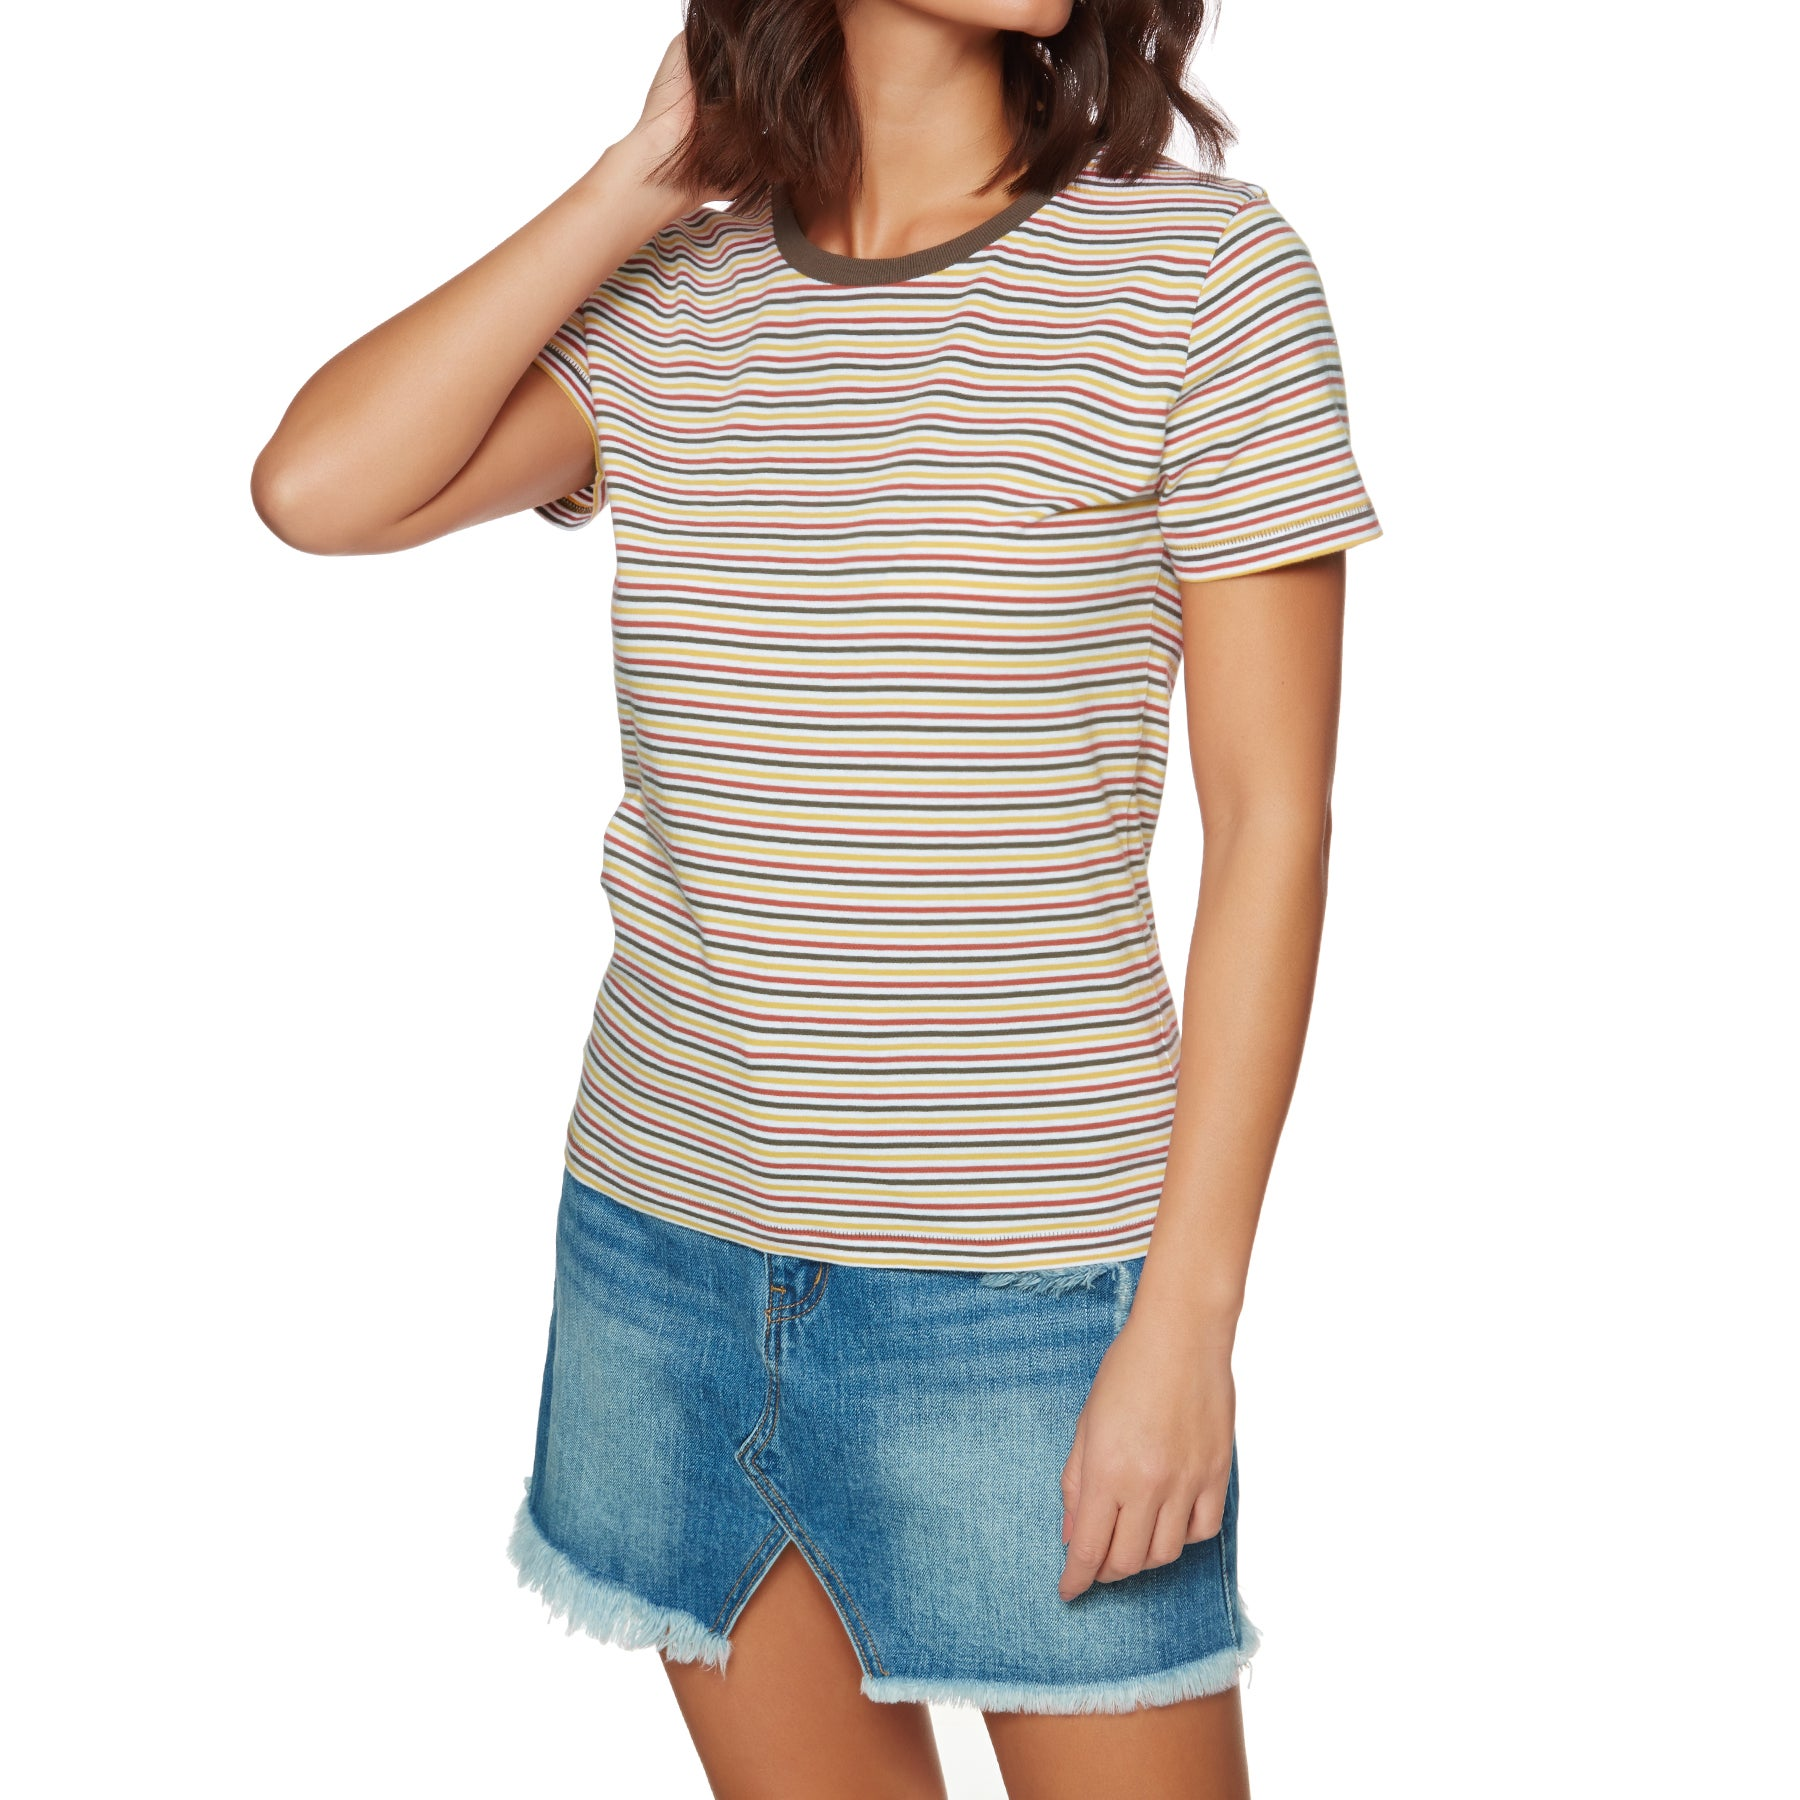 The Hidden Way Matilda Womens Short Sleeve T-Shirt - Multi